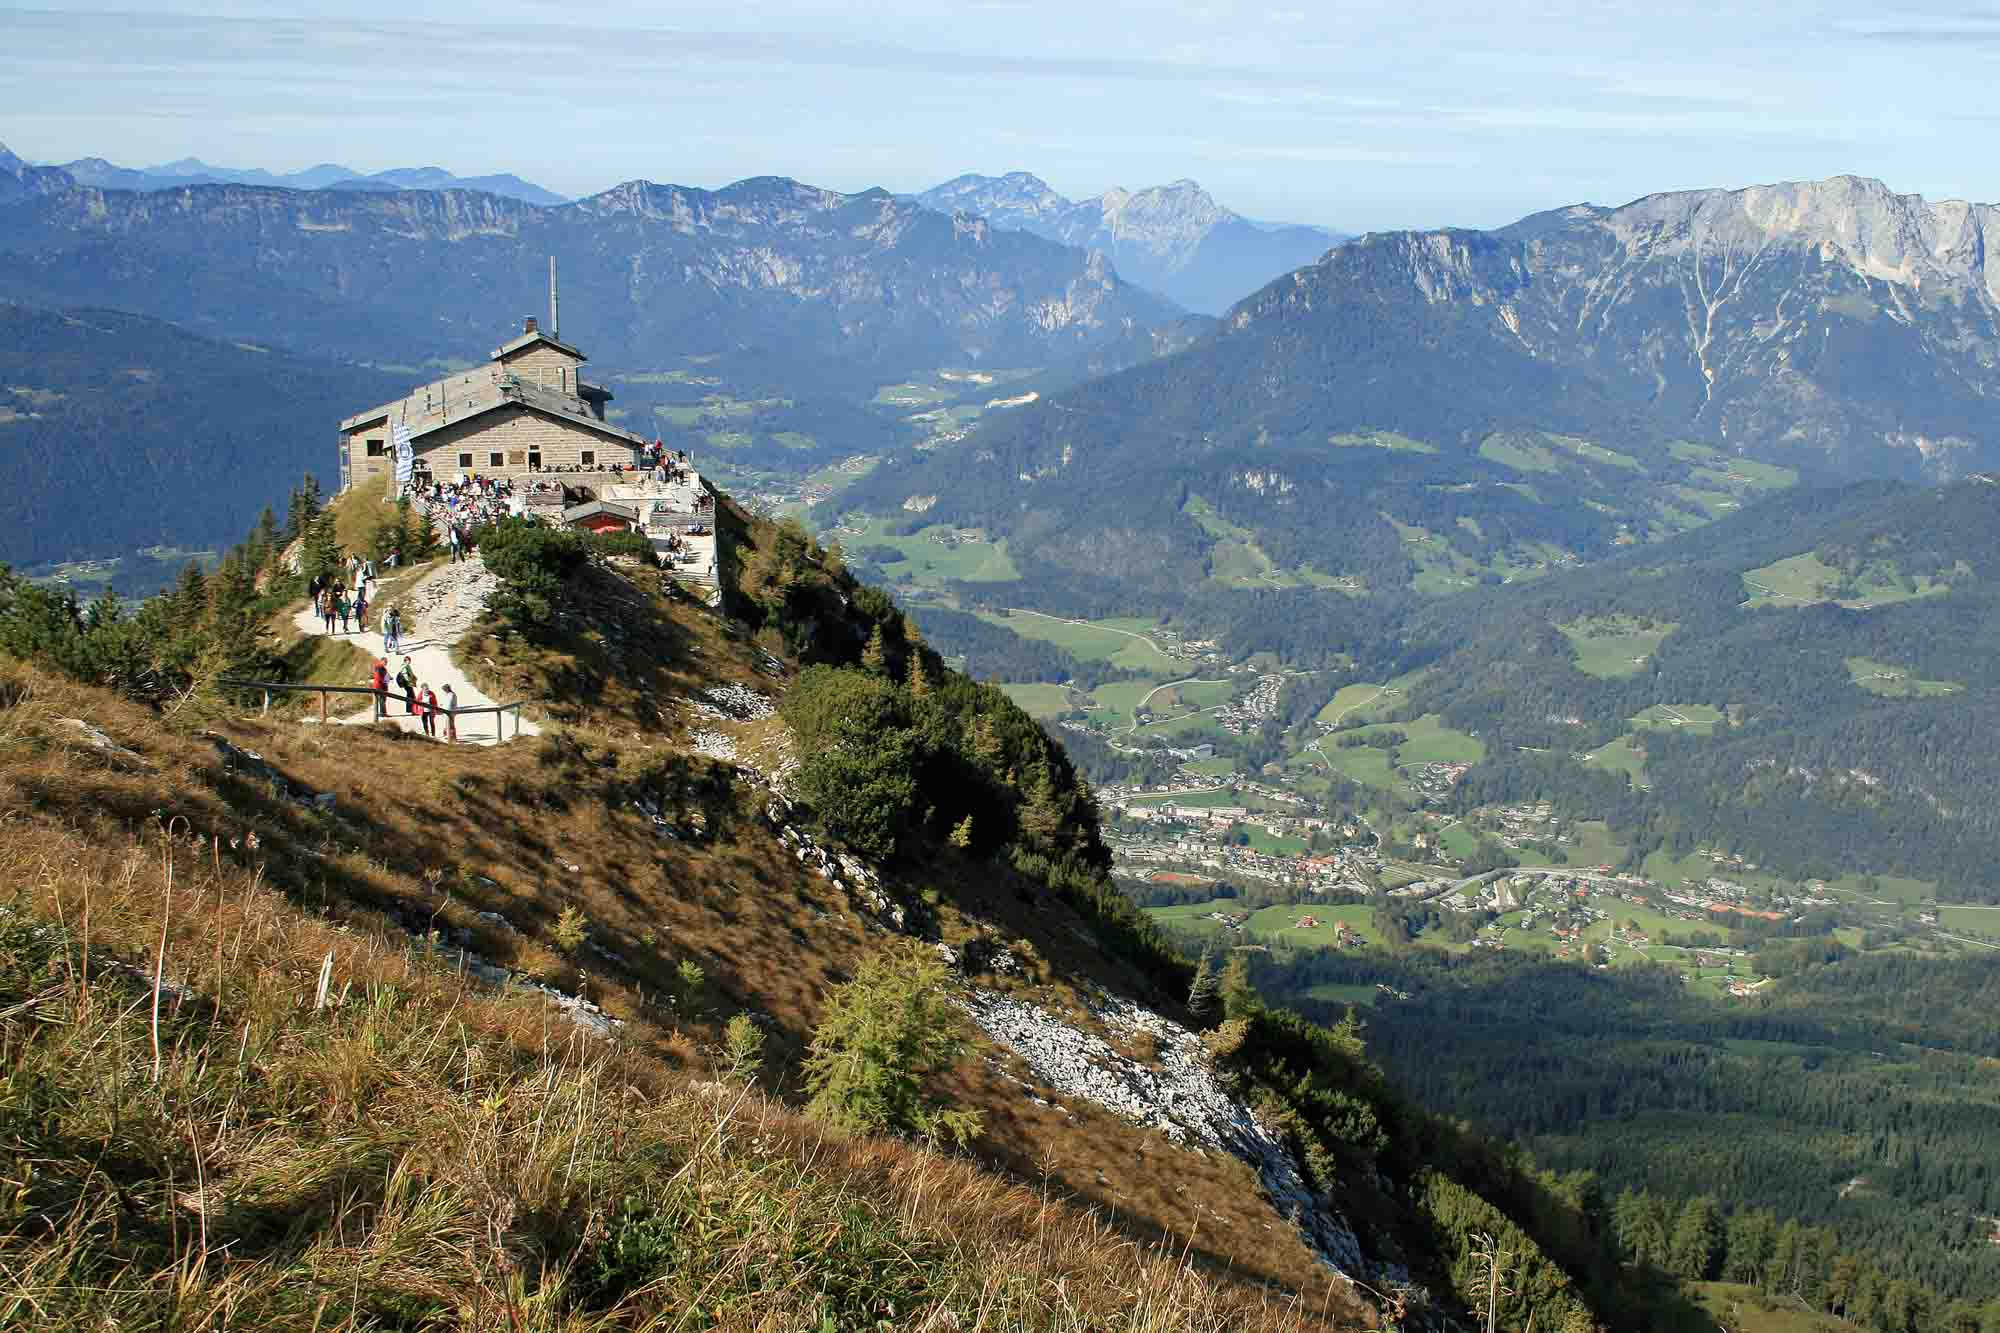 Ideas For Small Gardens Berchtesgaden And The Eagle S Nest Off The Beaten Track